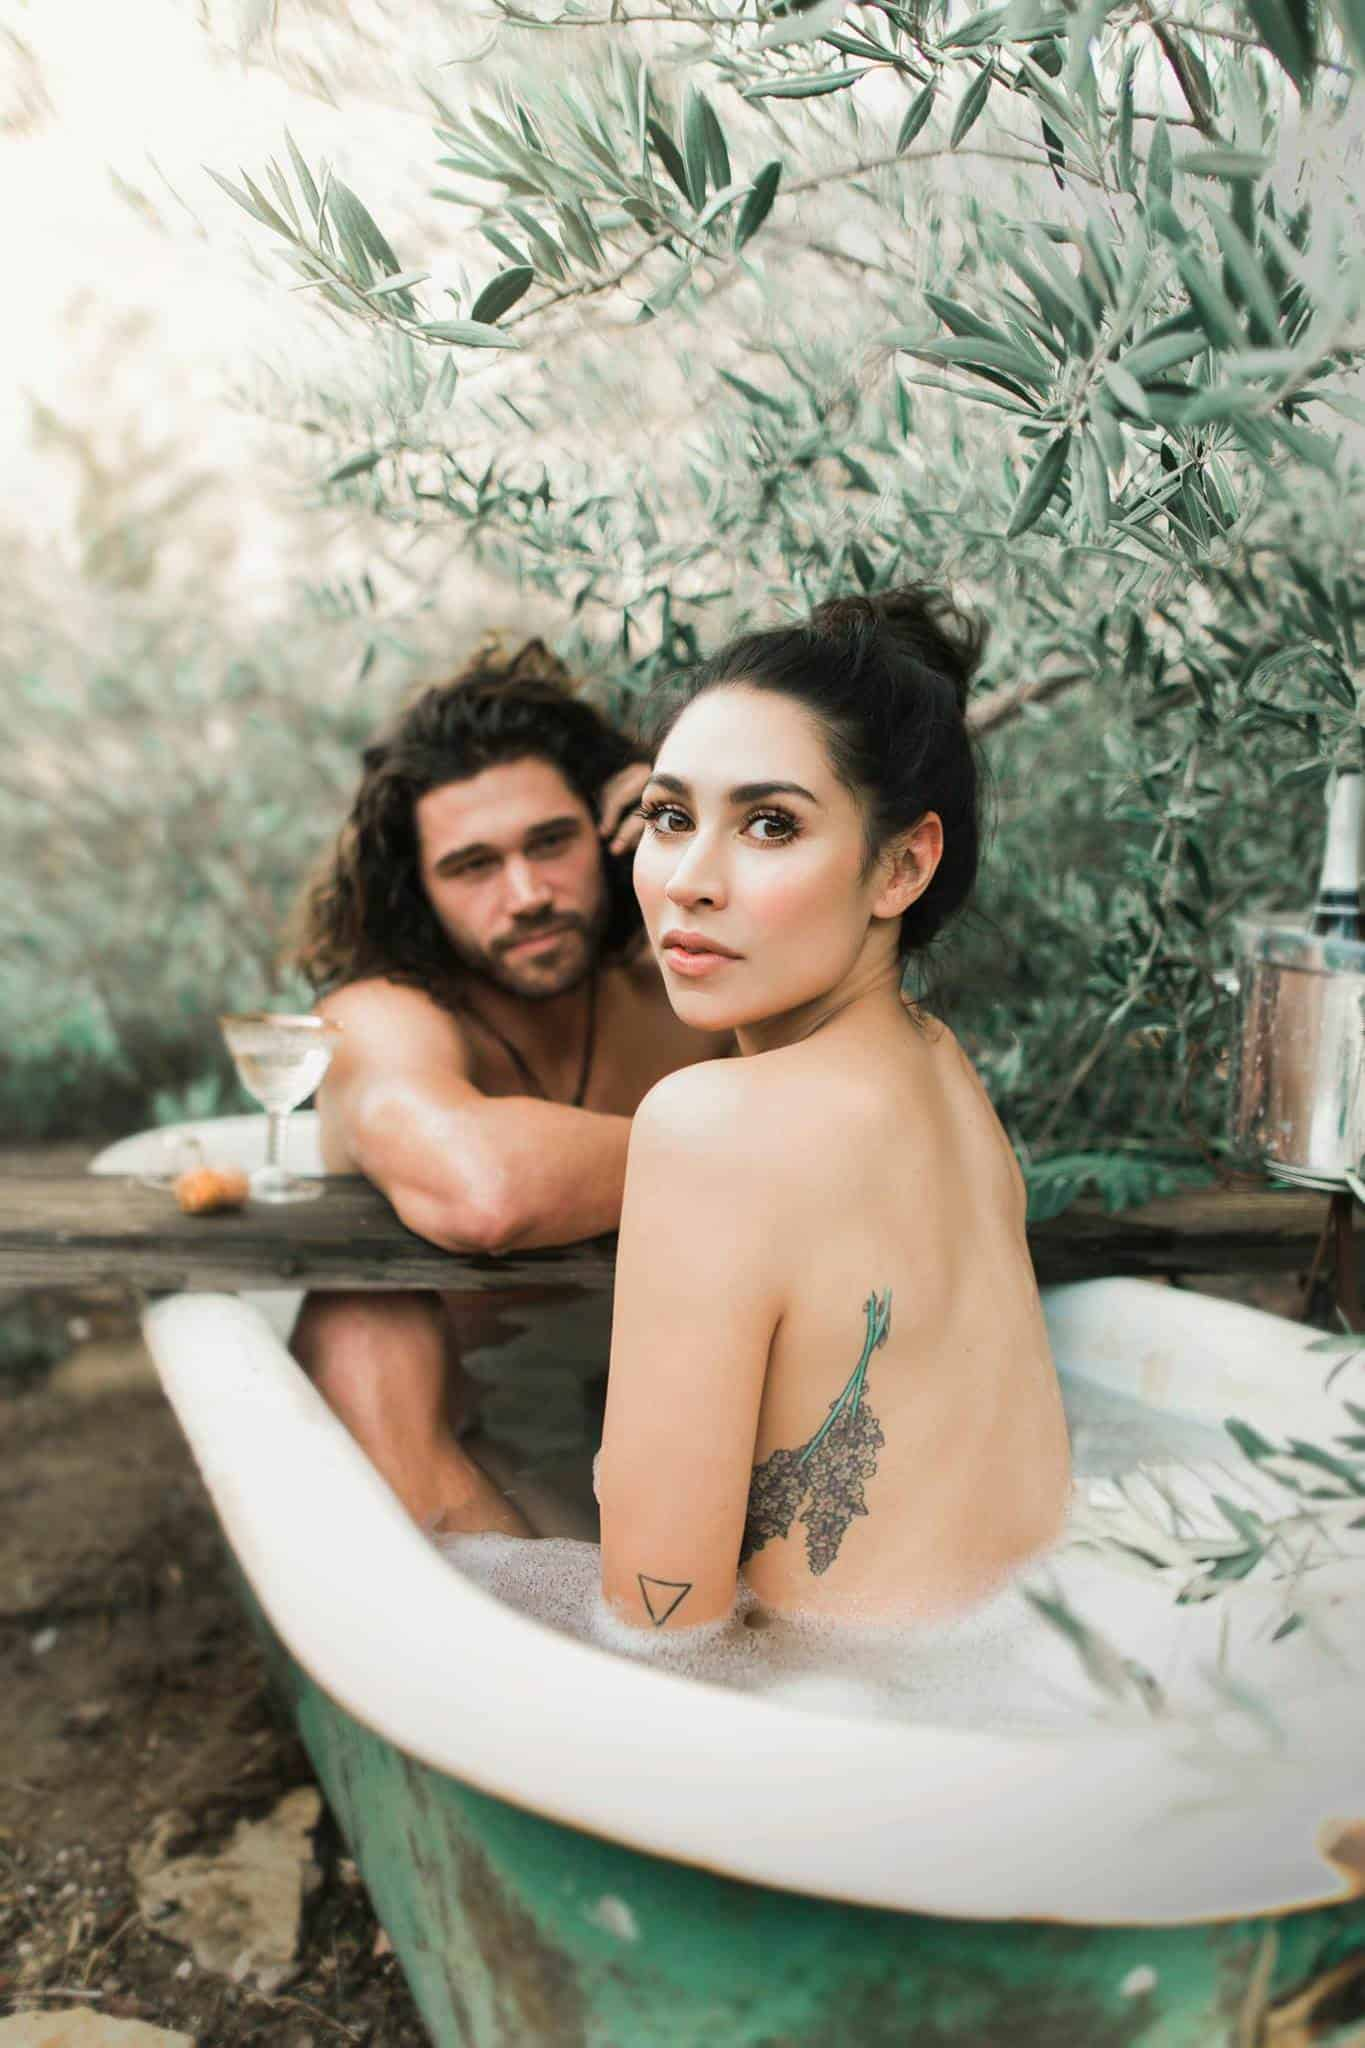 A beautiful couple in a bathtub